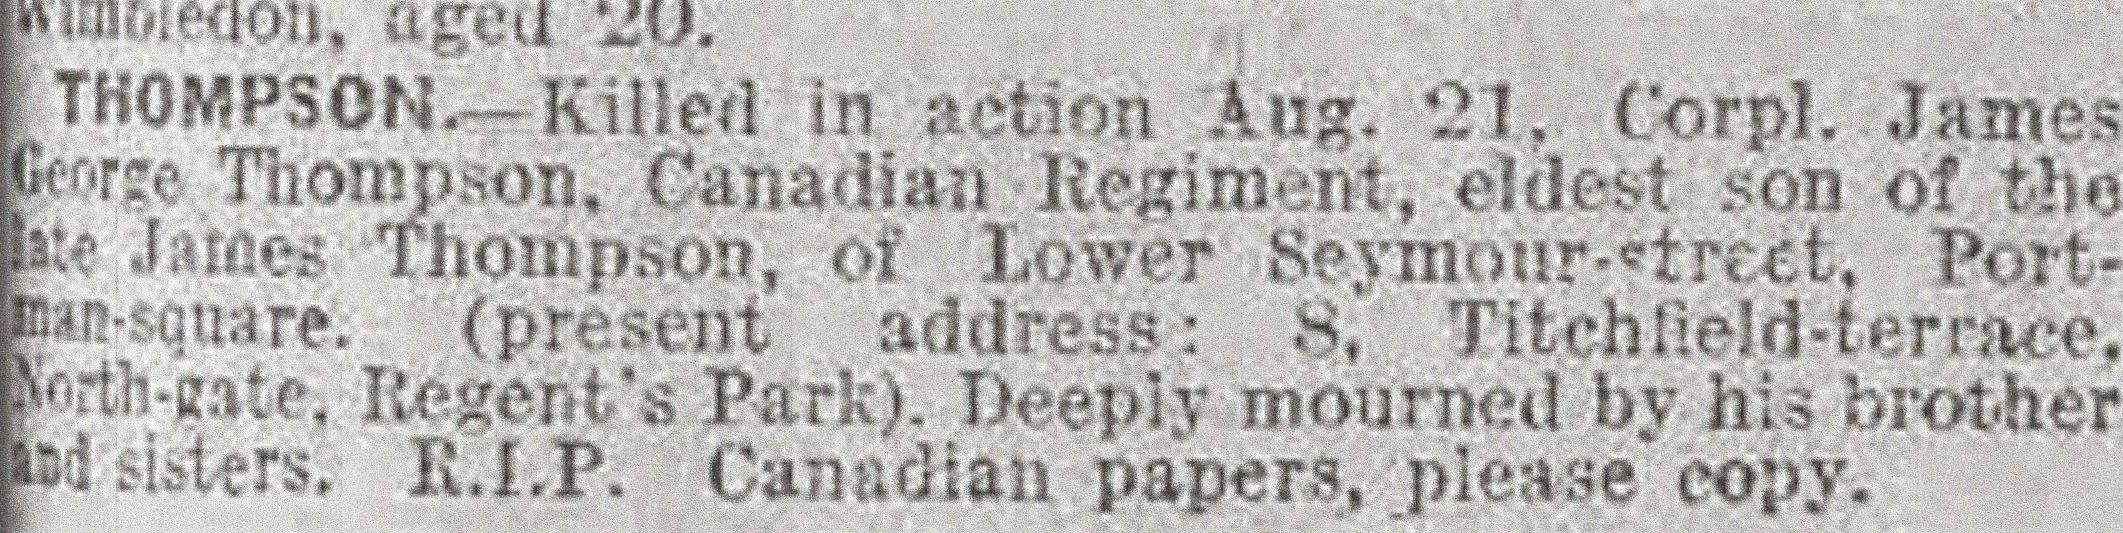 Newspaper Clipping– Newspaper clipping from the Daily Telegraph of September 6, 1917. Image taken from web address of http://www.telegraph.co.uk/news/ww1-archive/12214818/Daily-Telegraph-September-6-1917.html